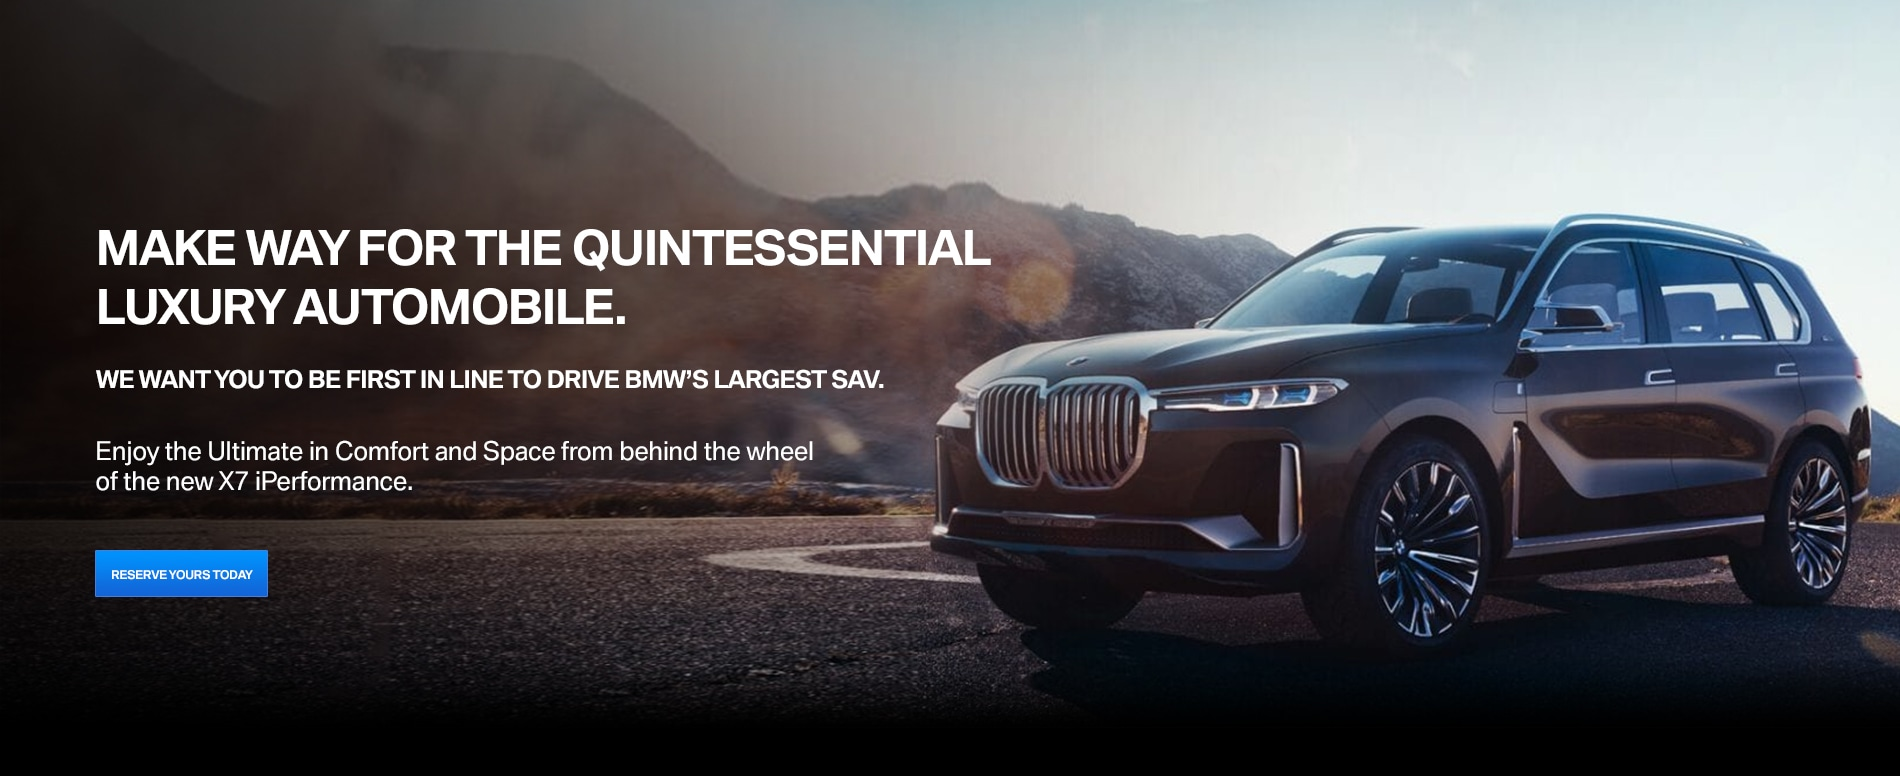 bmw of mountain view | bmw dealership near me in mountain view, ca